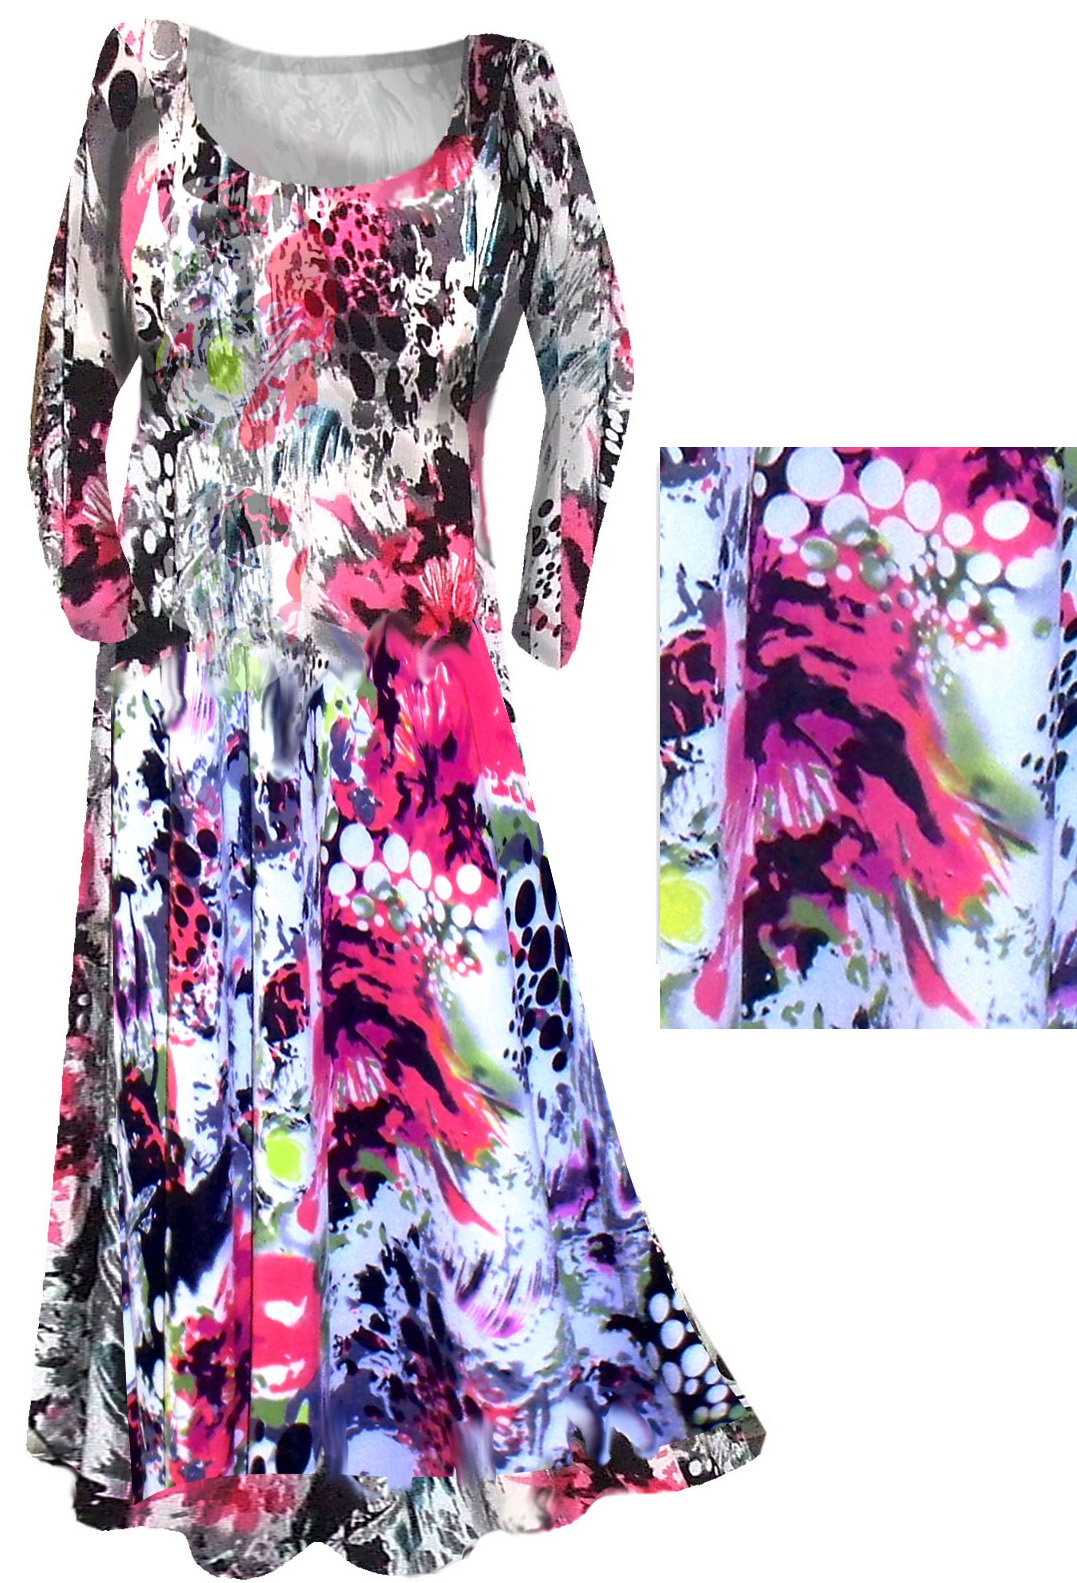 f16da9911c6 SOLD OUT!!!!Stunning Pink   Black Graphic Print Slinky Plus Size    Supersize Customizable Dresses